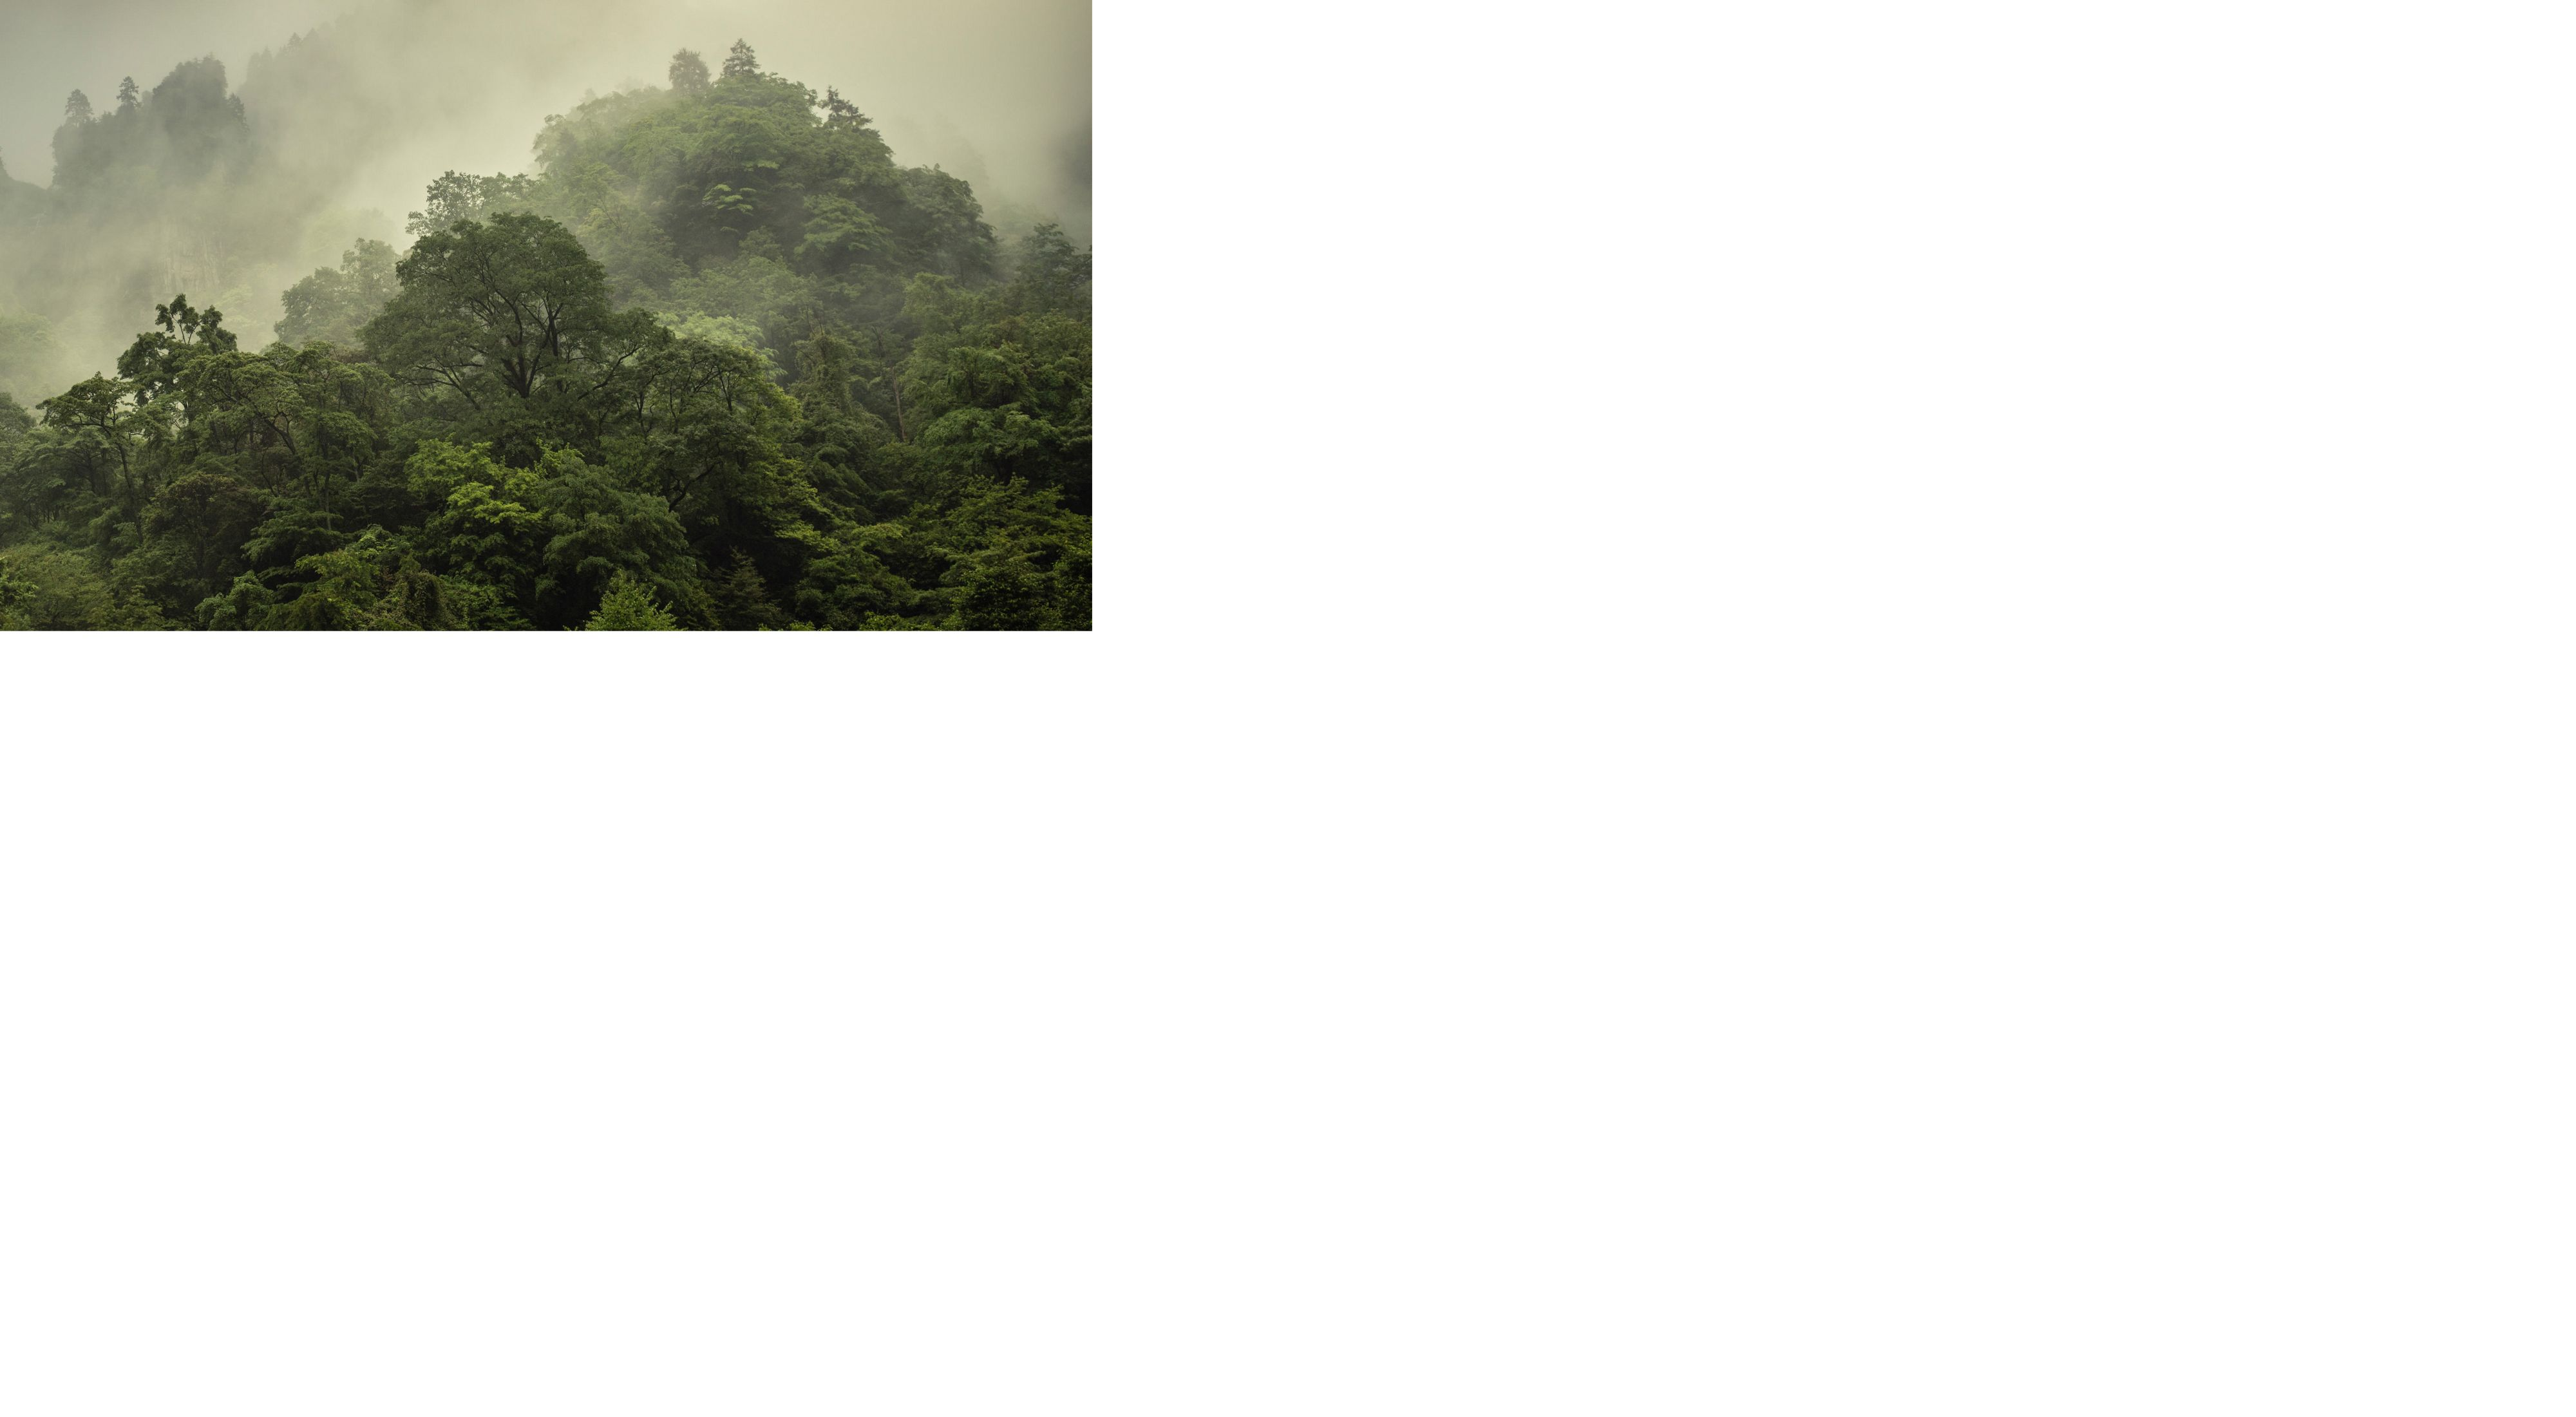 Misty mountain peaks of Laohegou Nature Reserve, Pingwu County, Sichuan Province, China.